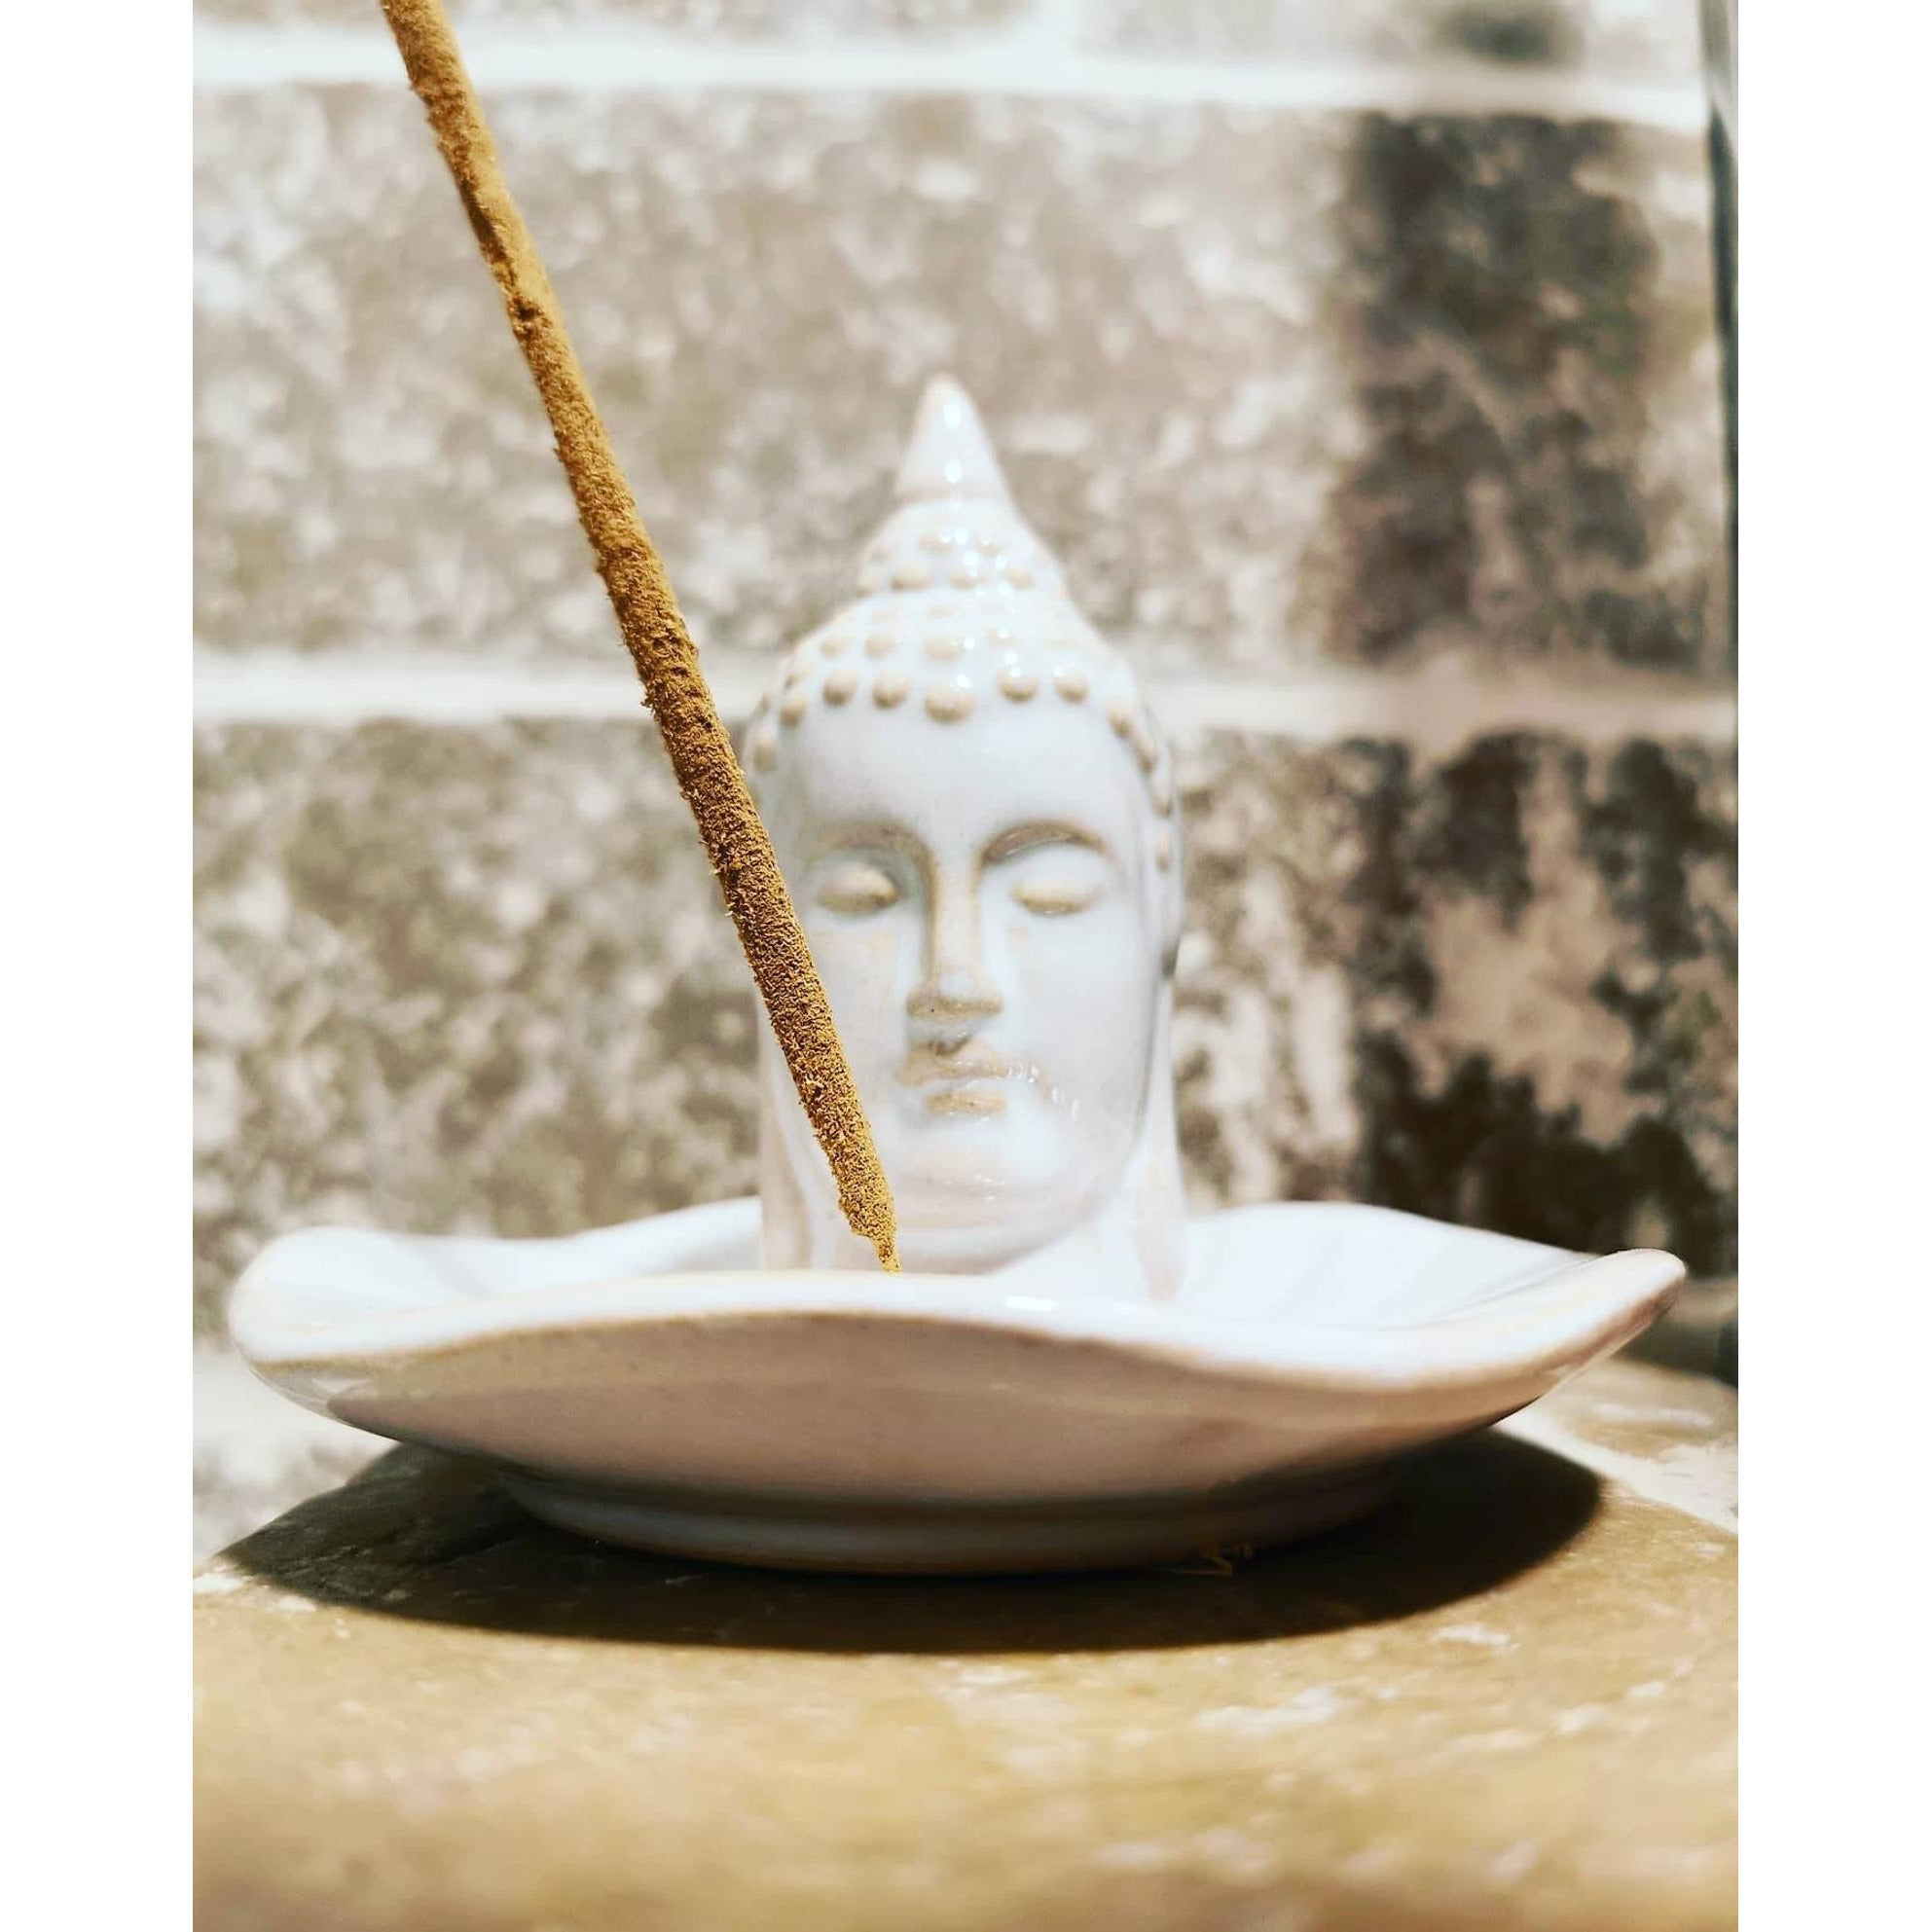 Handmade Ceramic Buddha incense burner (without incense) - natoorio